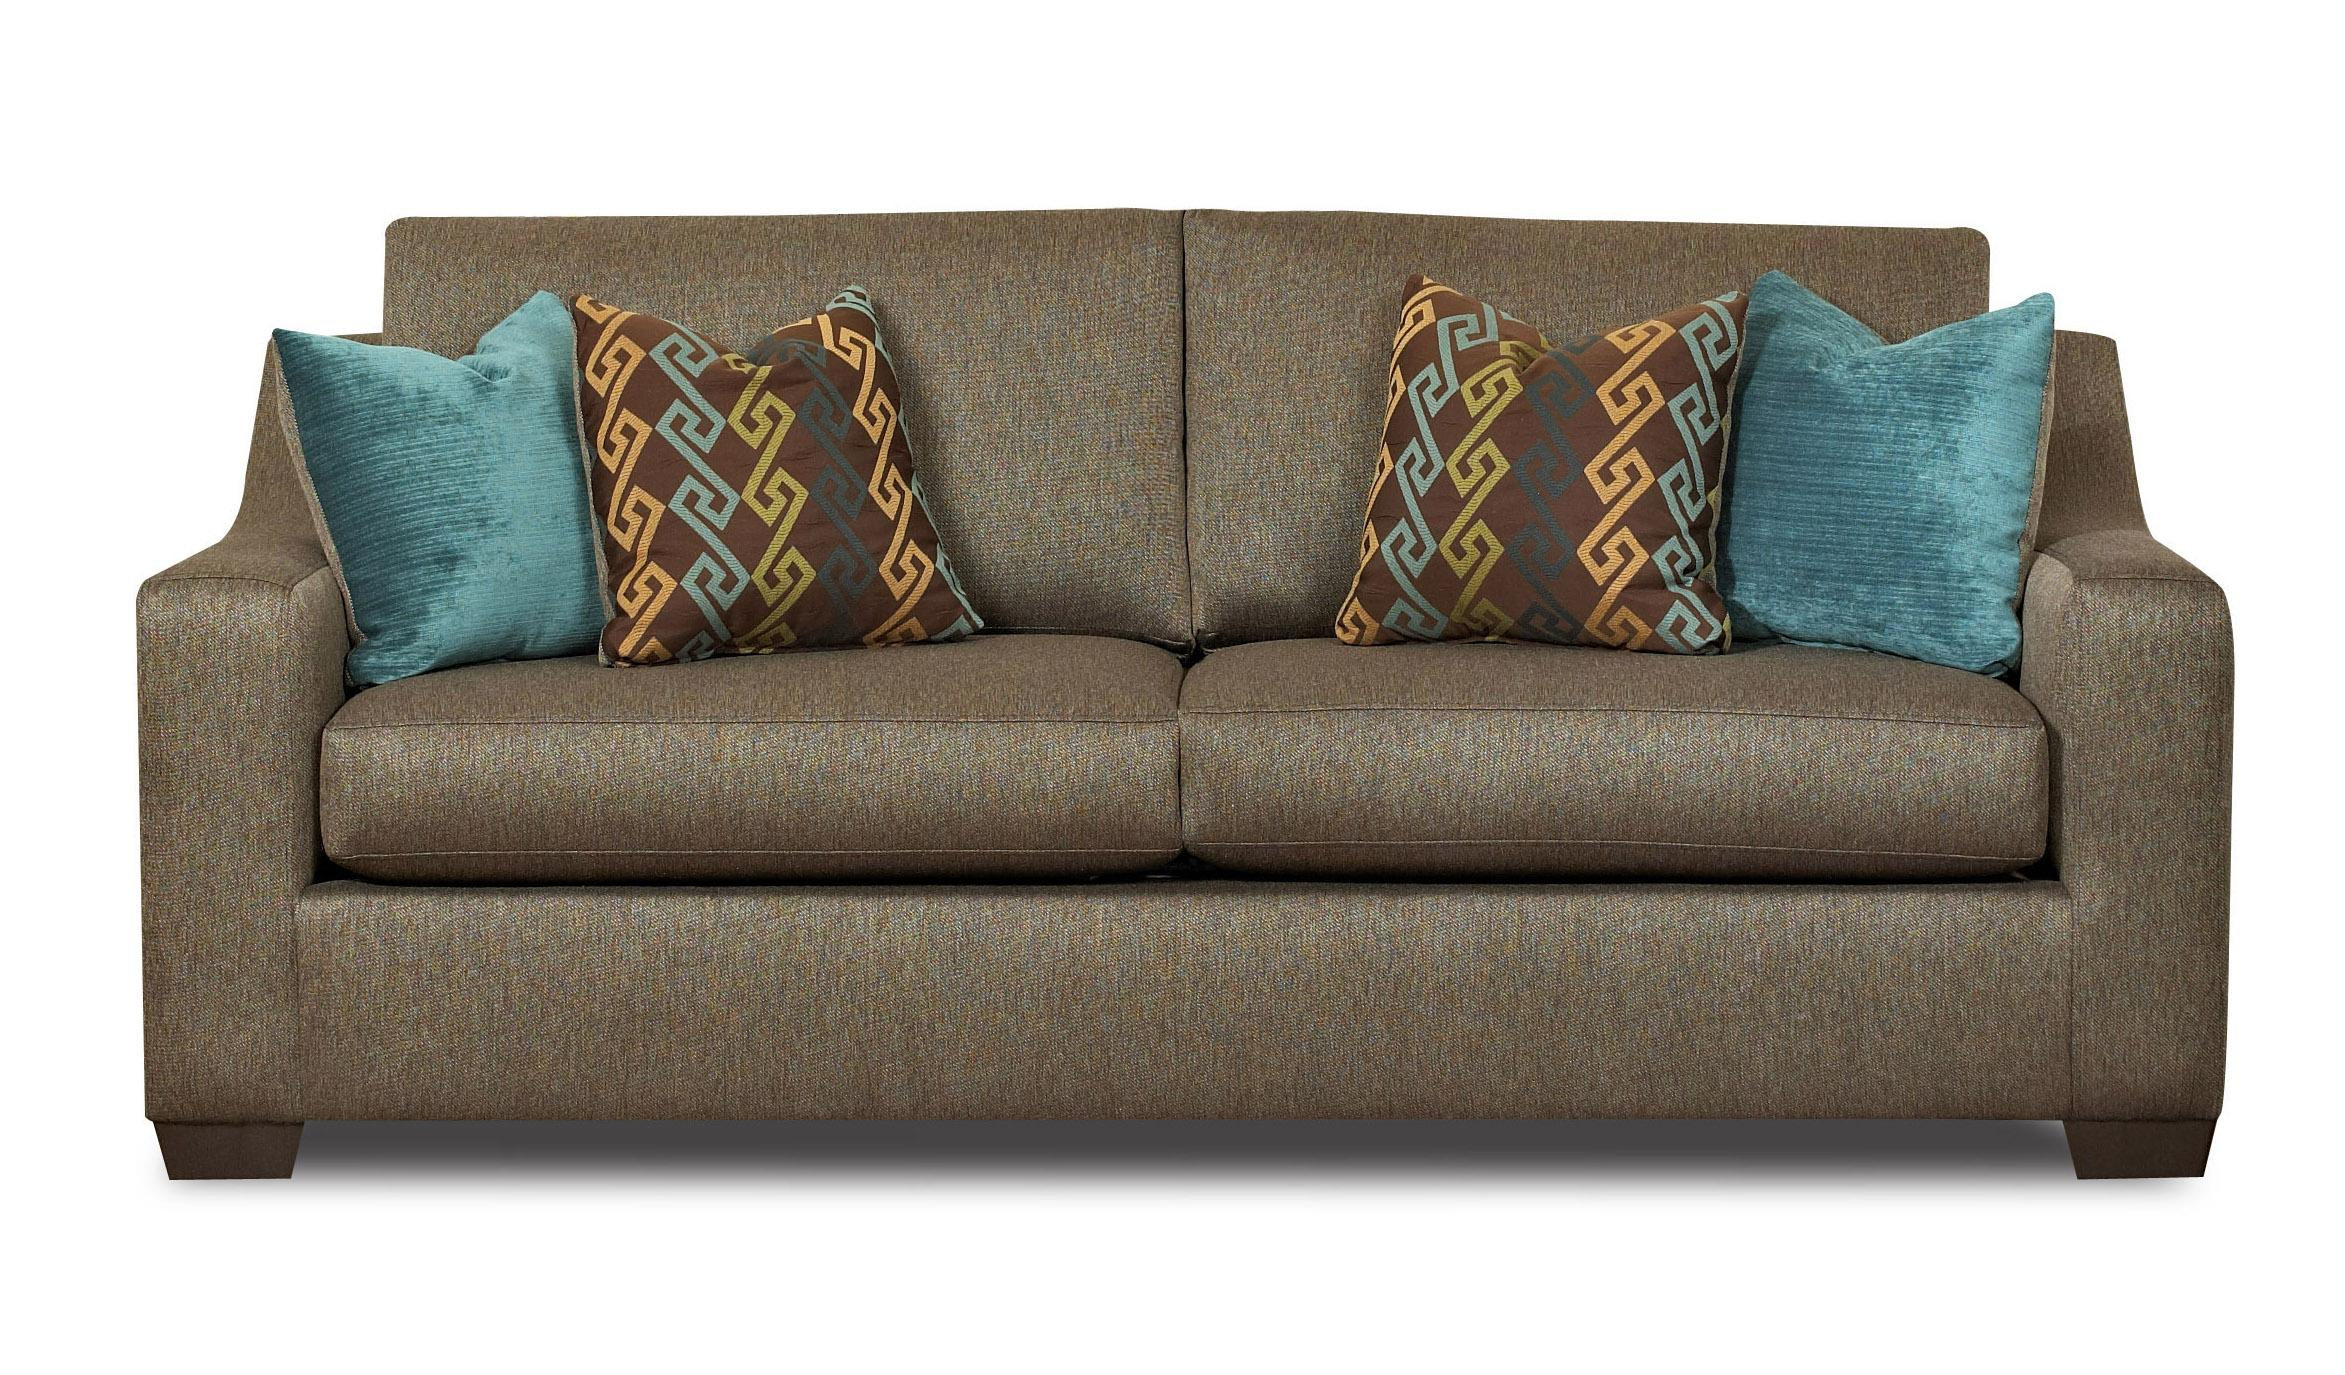 Klaussner argos e20300 s contemporary sofa with sloped for Chair cushion covers argos